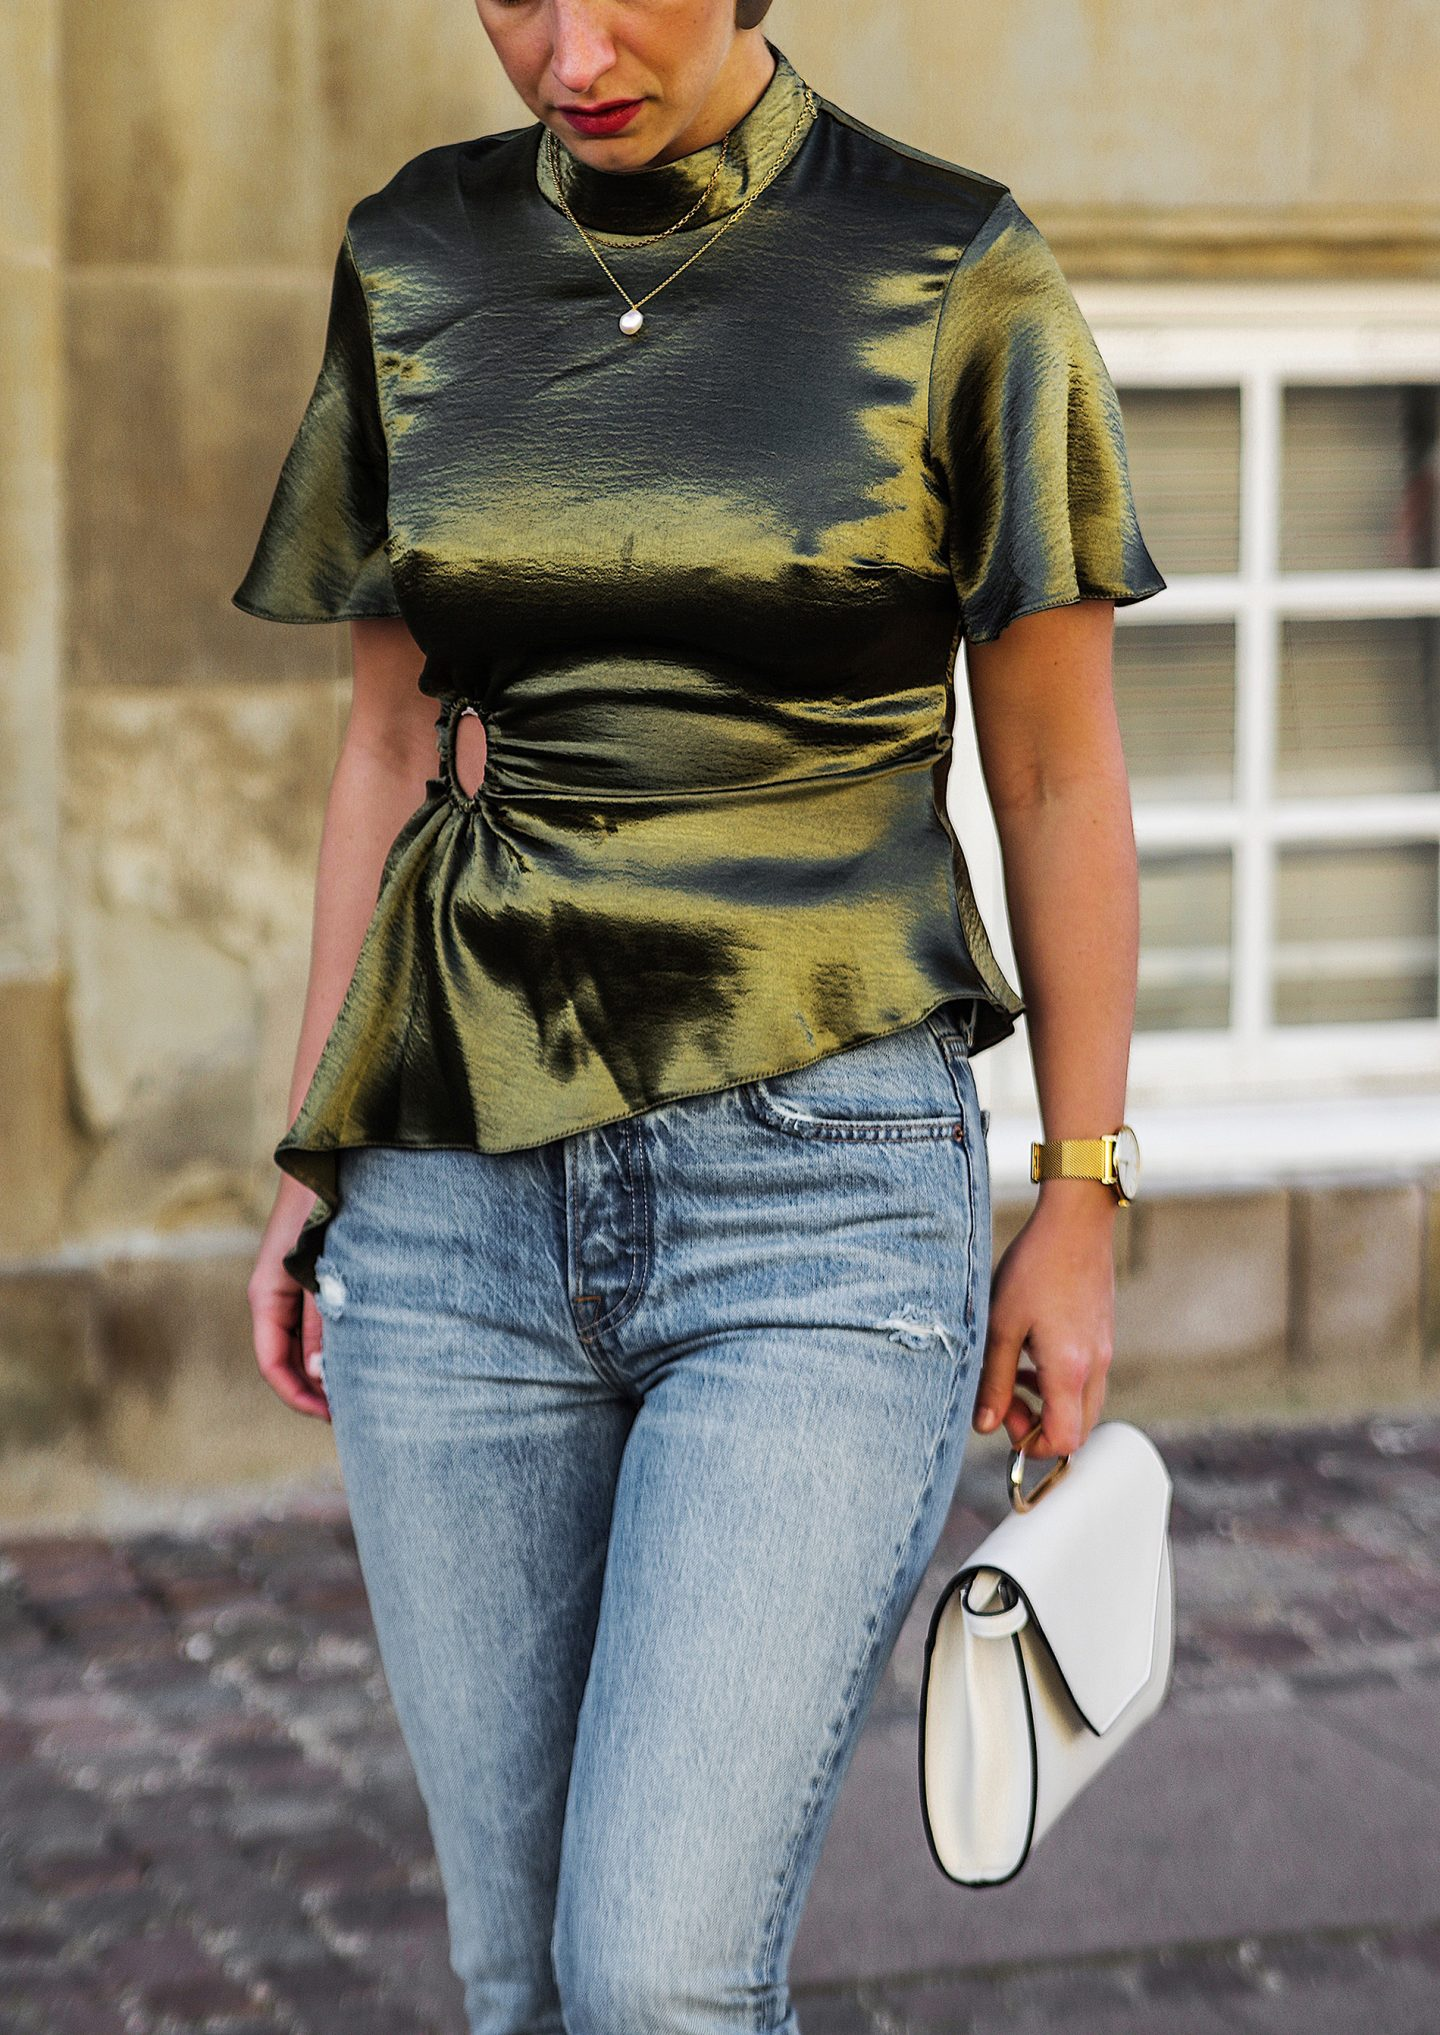 Tops-and-Blouses-spring-and-summer-2019-for-work-and-casual-spring-outfit-ideas-tops-for-spring-outfits-ideas